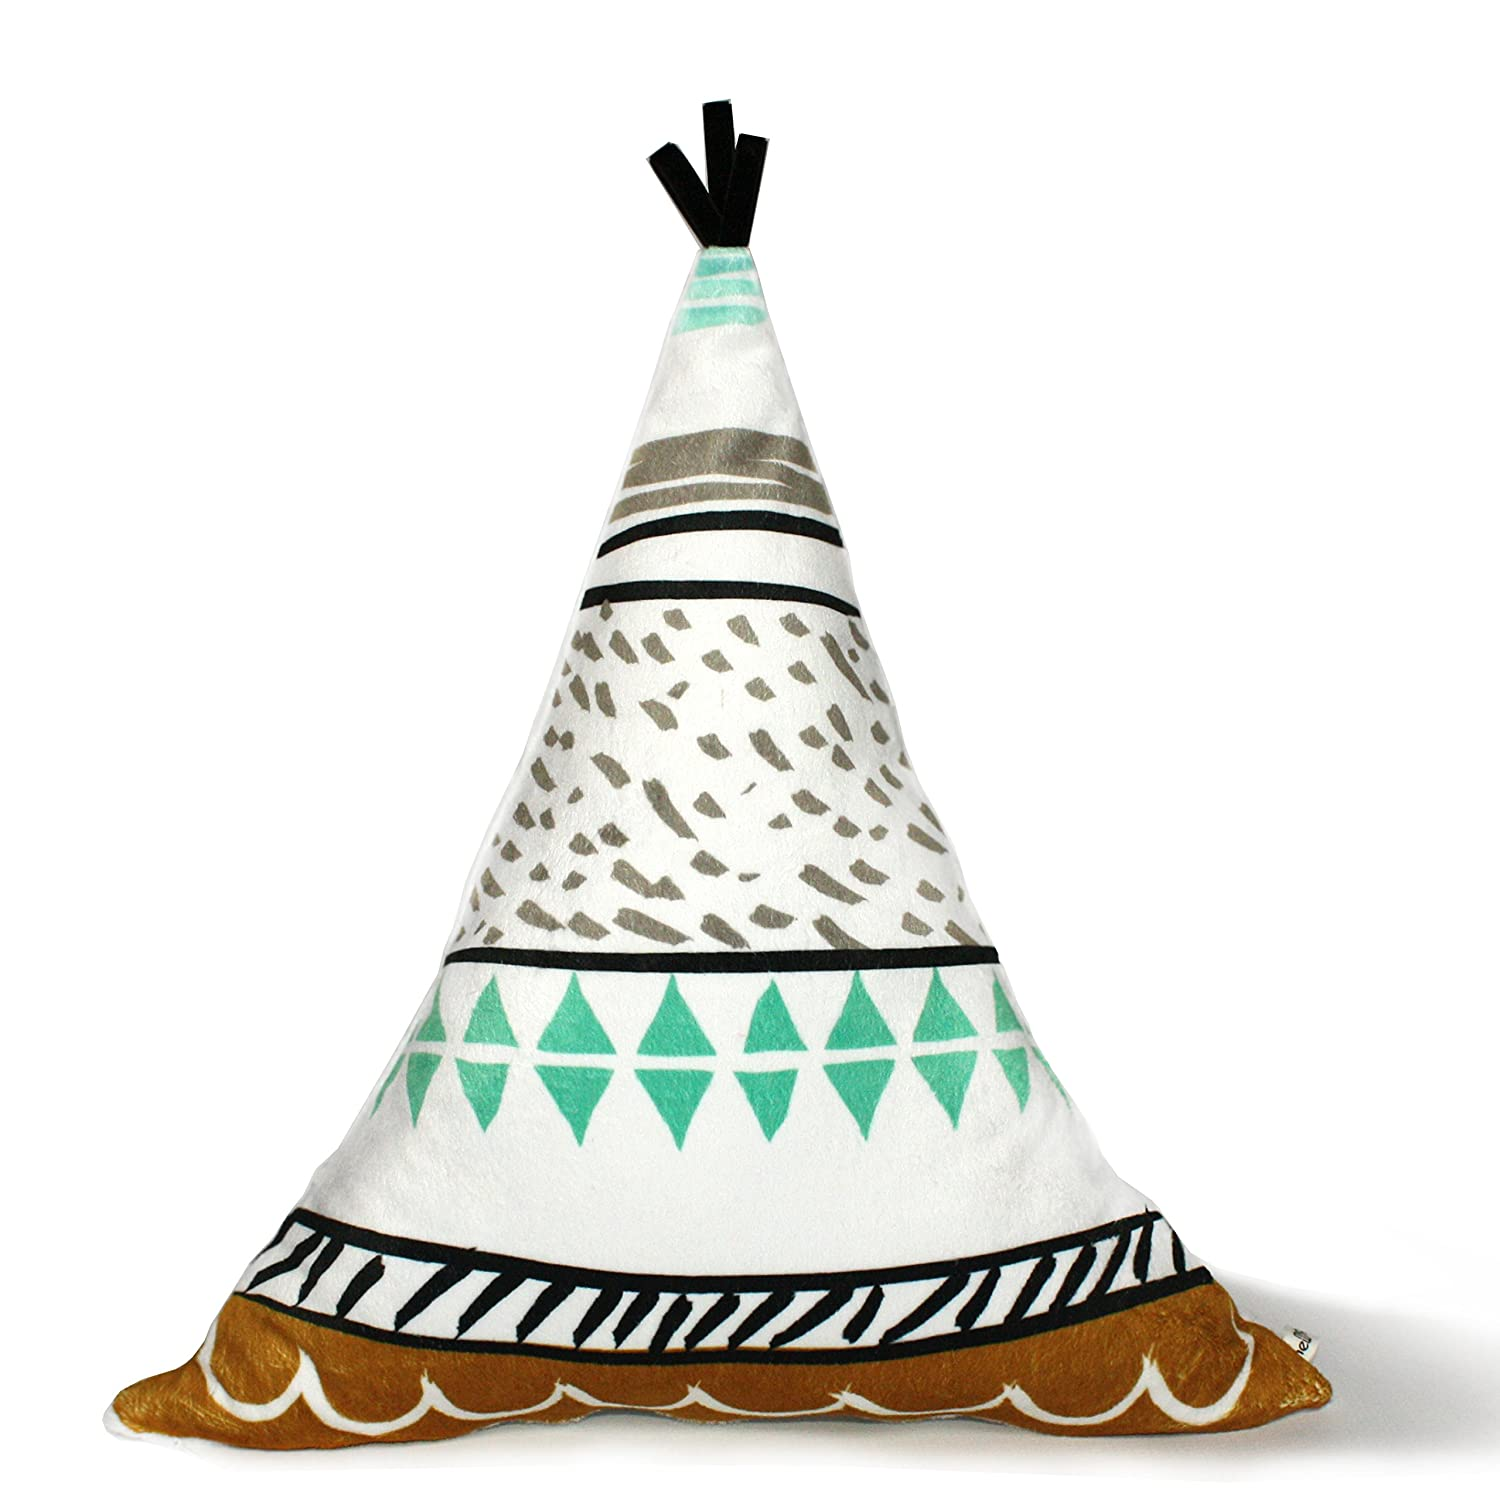 Decorative Nursery Pillow - Teepee Pillow -